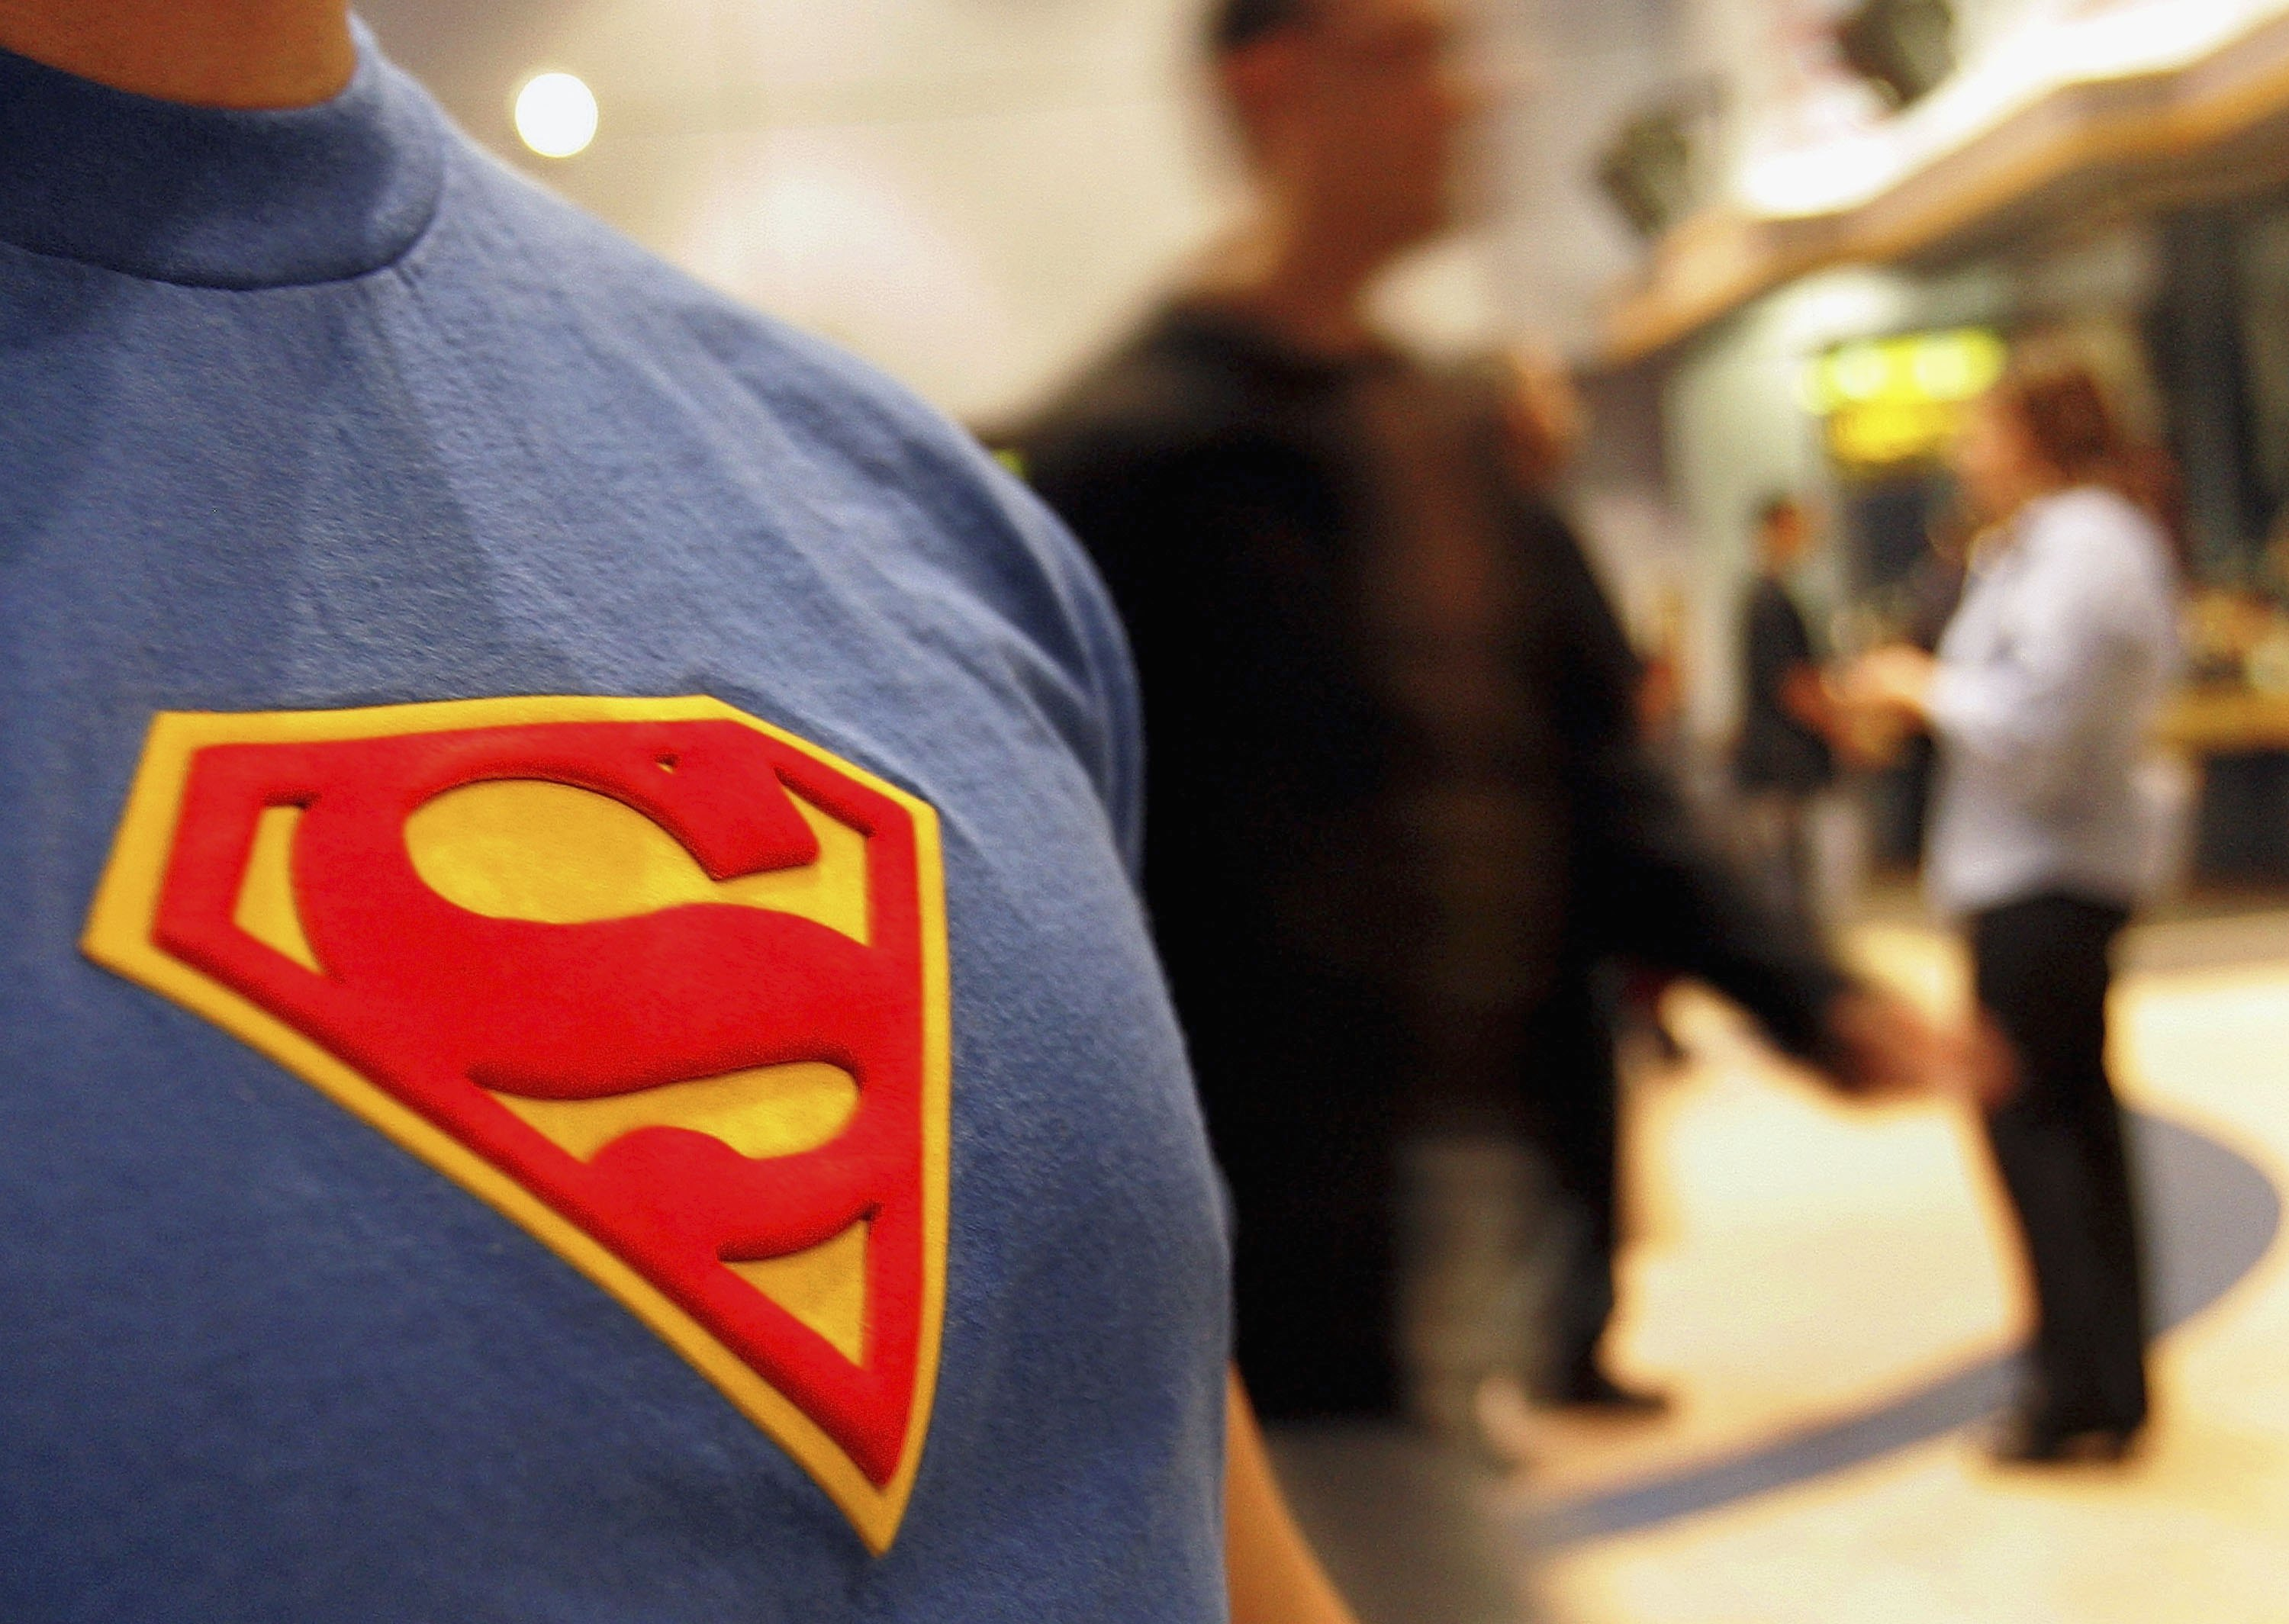 CHICAGO - JUNE 27: A moviegoer wearing his Superman tee-shirt is seen in the lobby prior to watching the new Superman Returns movie on June 27, 2006 in Chicago, Illinois. The theater had a special showing of the much anticipated new Superman movie at 10pm. (Photo by Tim Boyle/Getty Images)